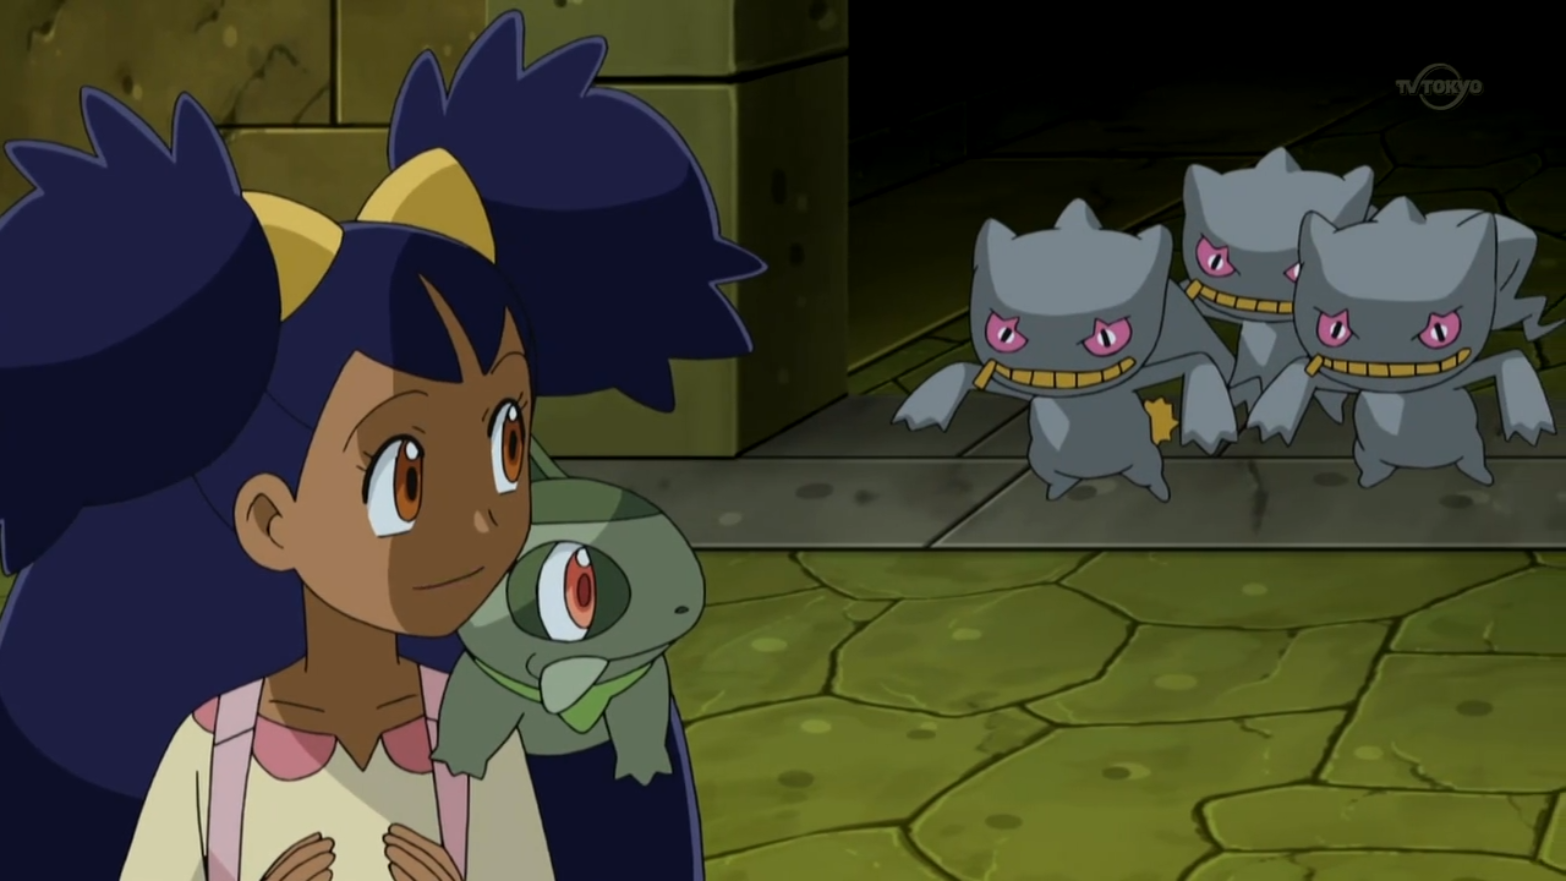 Conley fought and calmed down the three Banette, who are defenders of the arena.